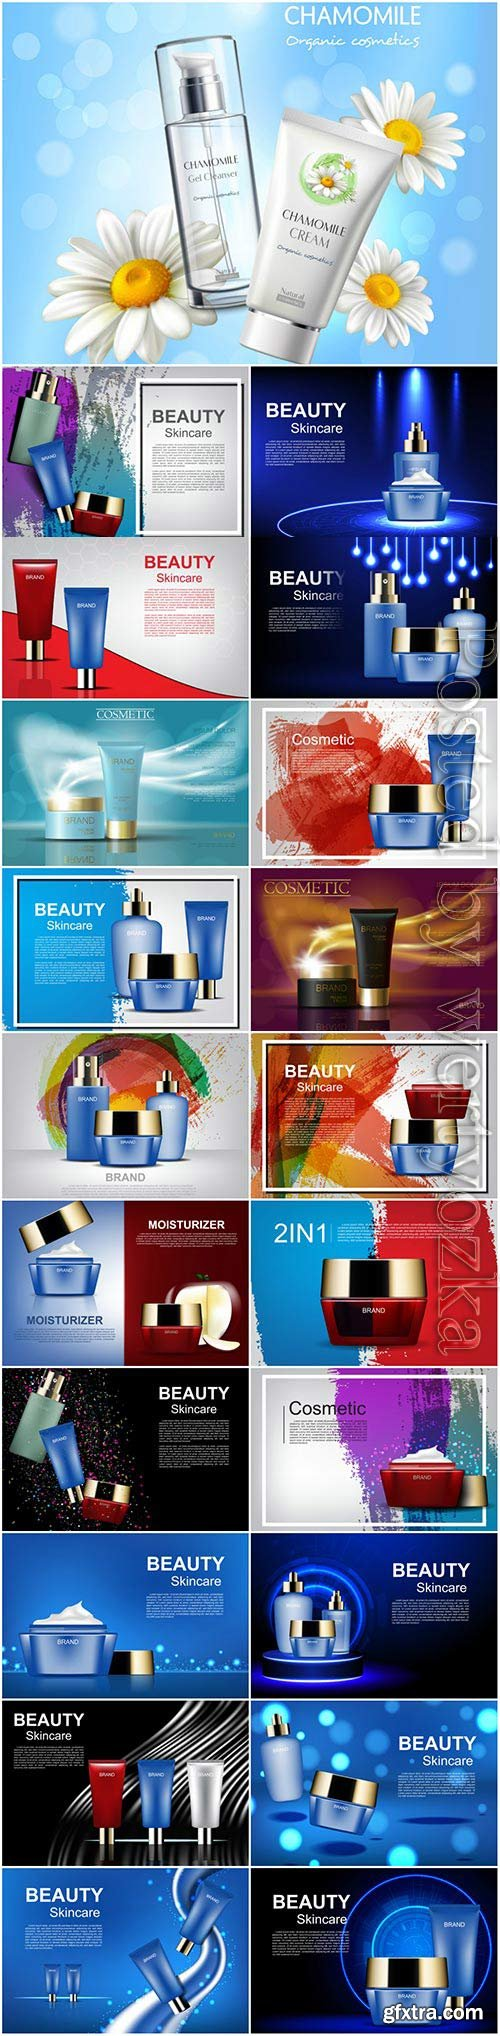 Cosmetic products illustration in vector